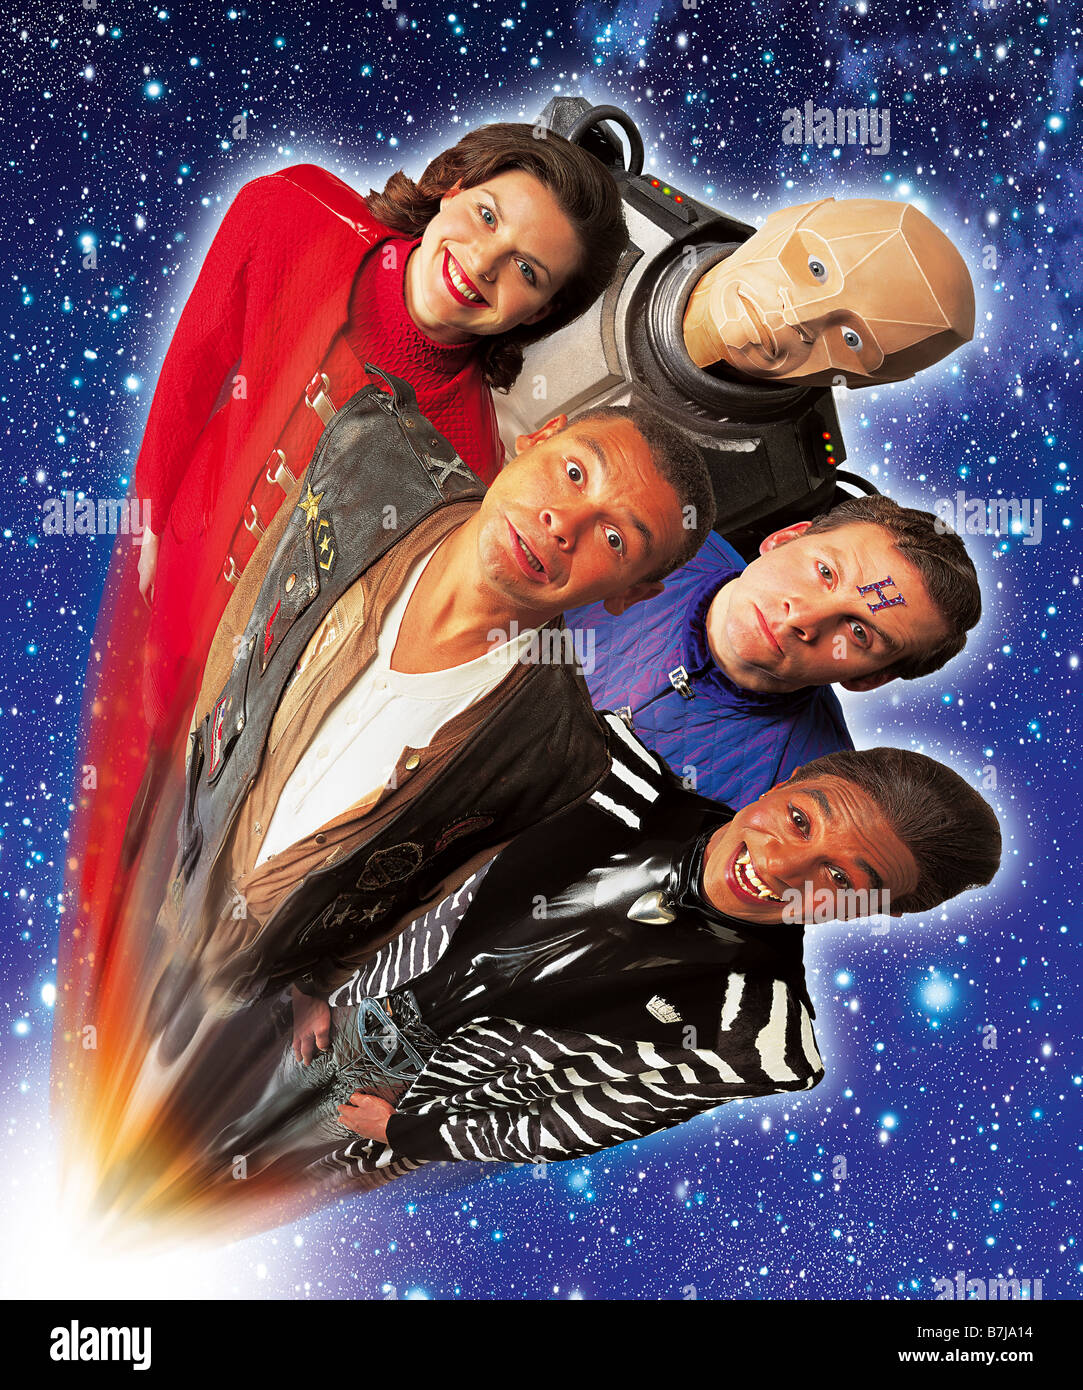 Red Dwarf characters from series 7 and 8. Chloe Arnett, Craig Charles, Danny John Jules, Robert Llewelyn, Chris - Stock Image